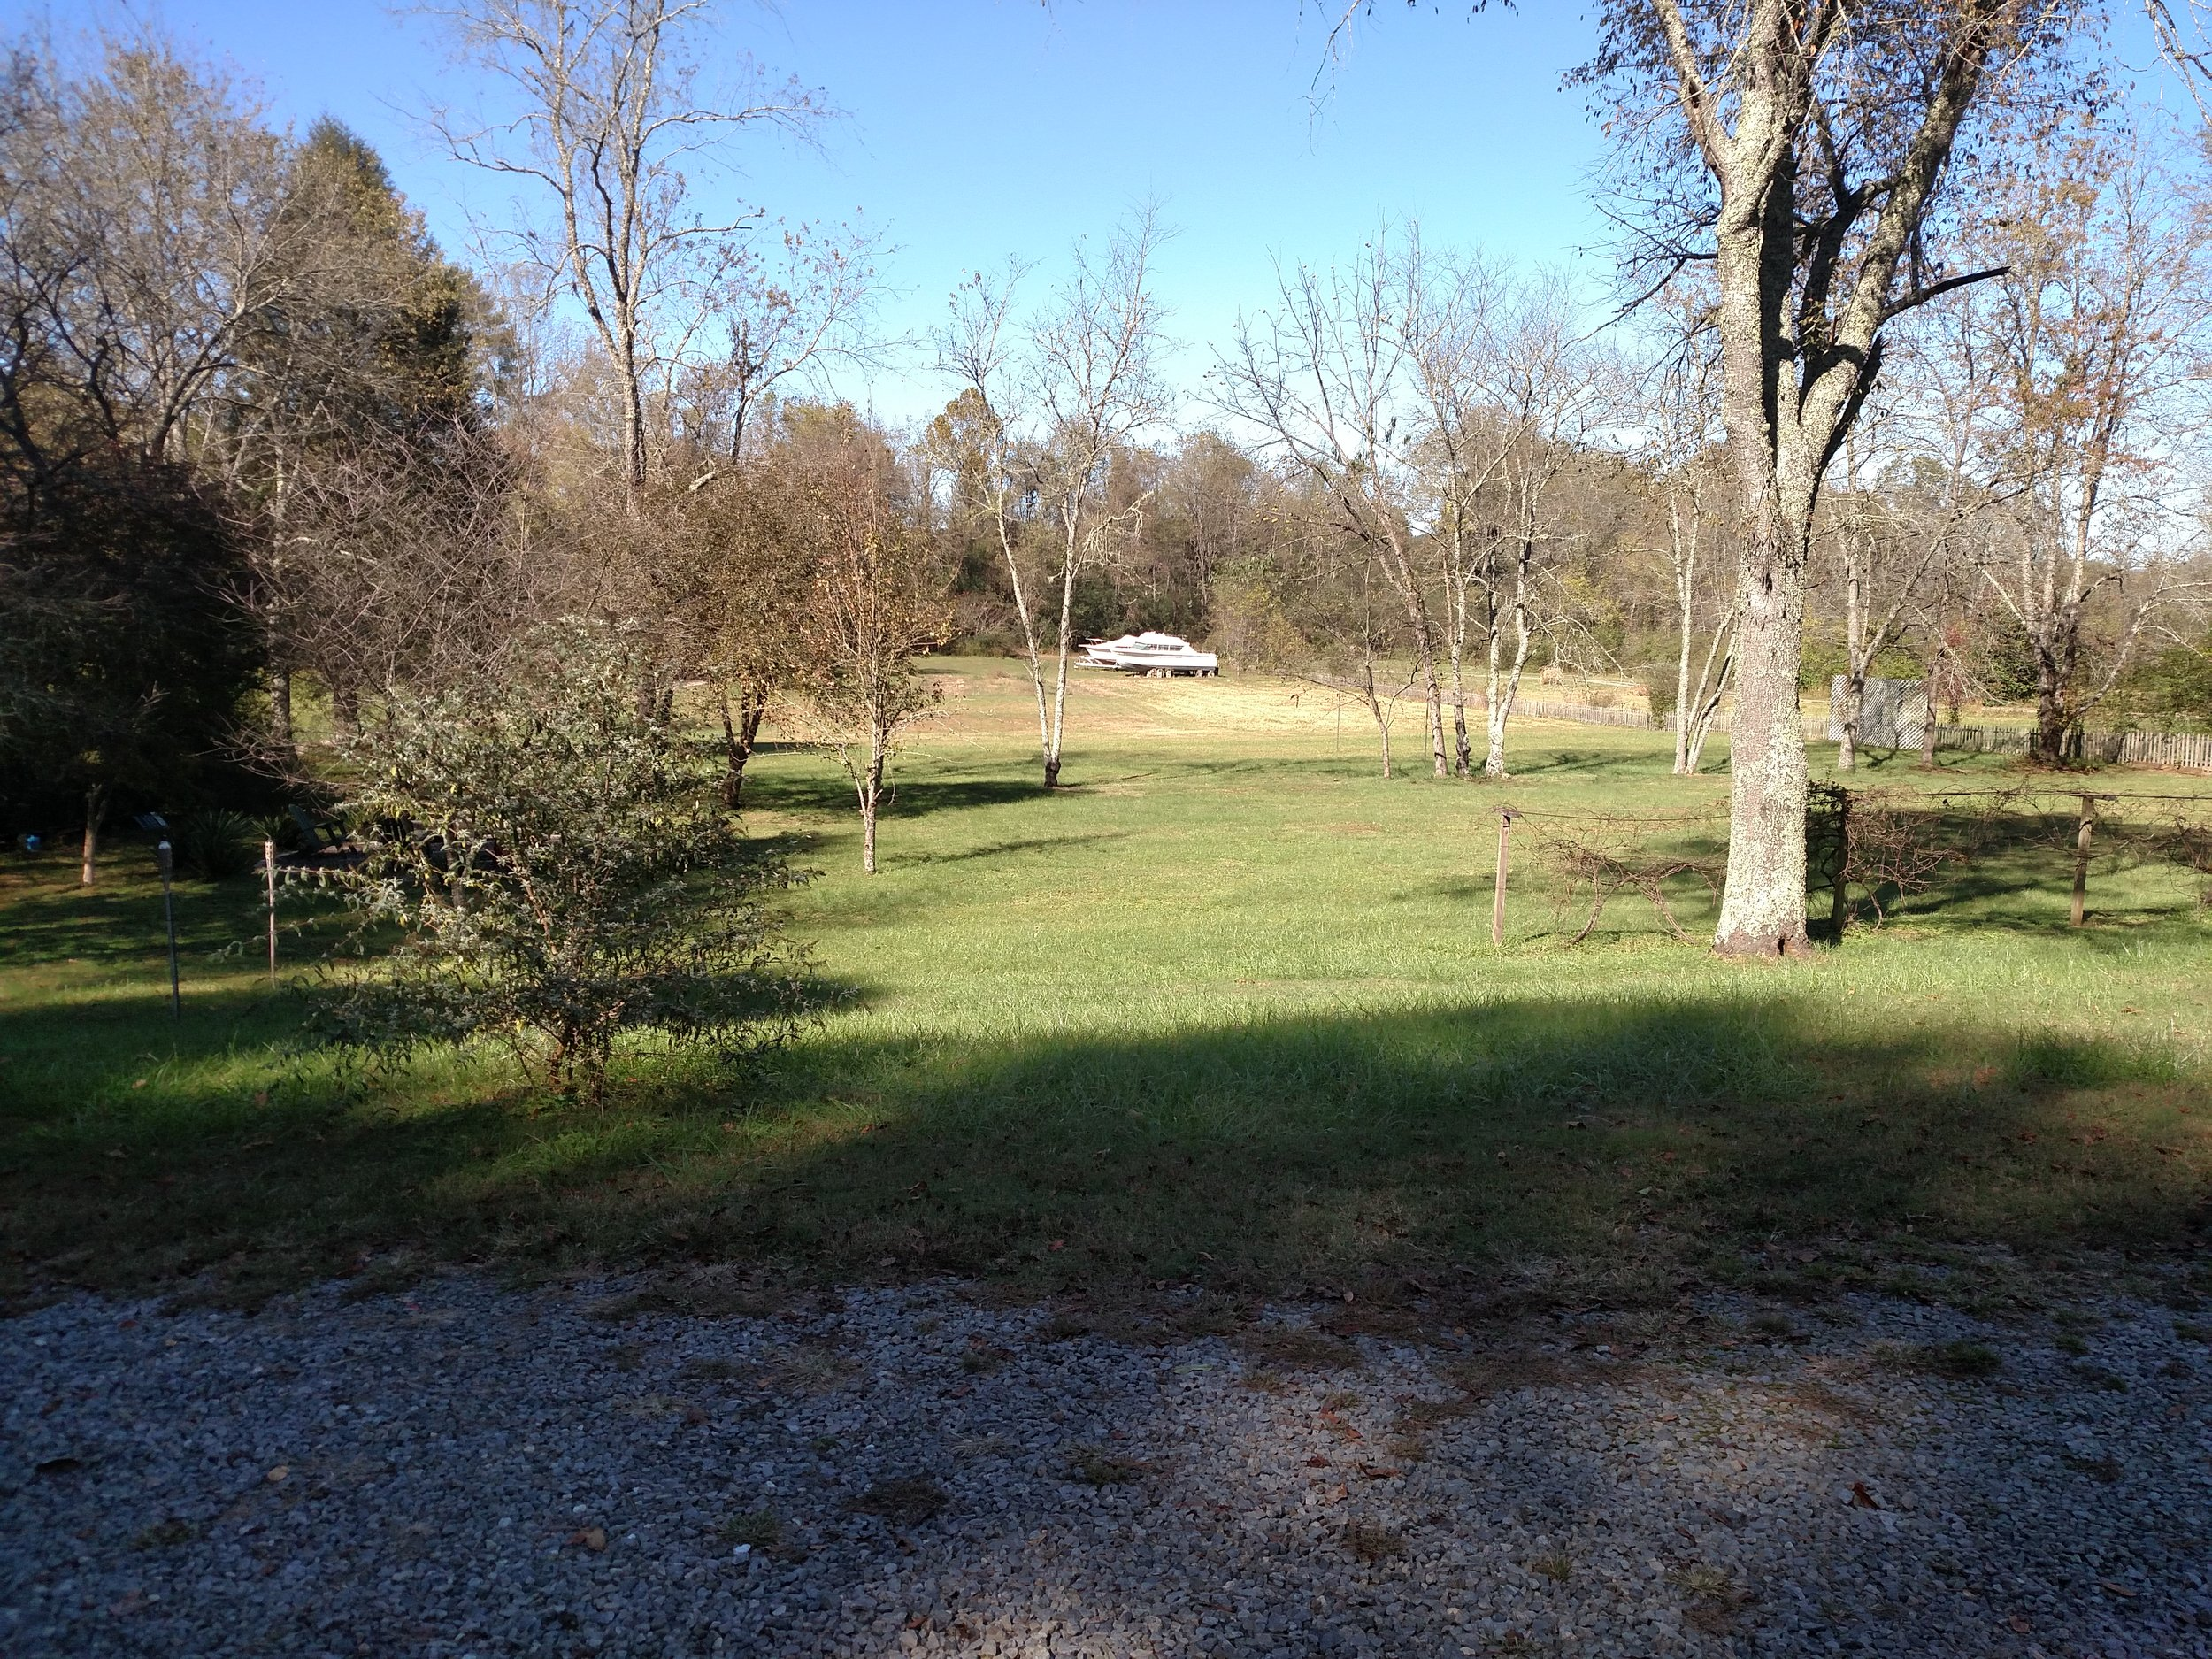 1 FRONT YARD MOST OF THE PROPERTY IS HERE.jpg